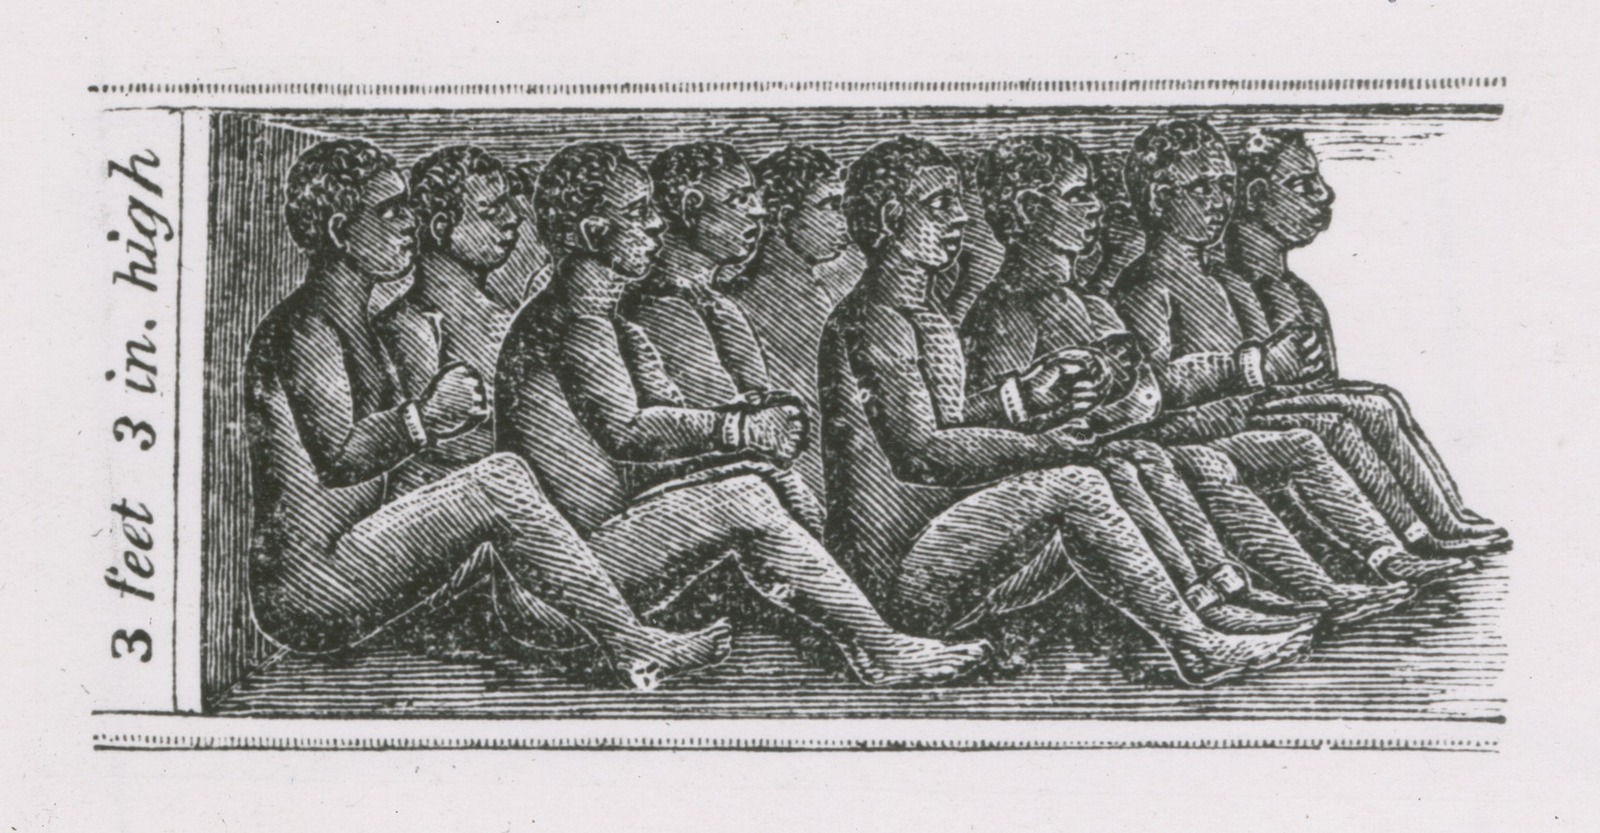 An Illustration Of Chained African Slaves In The Cargo